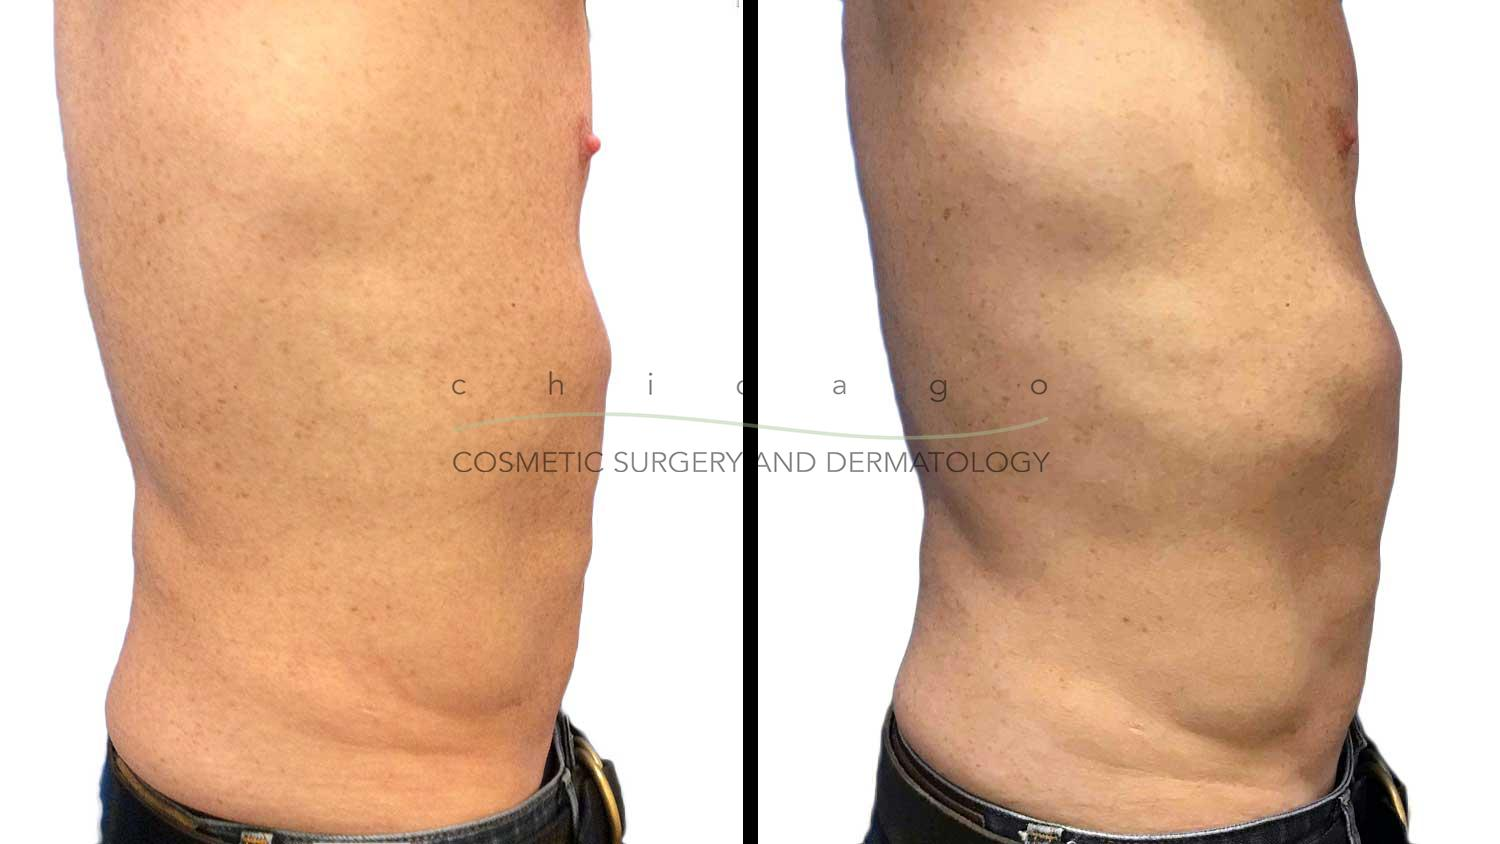 Emsculpt abs before and after